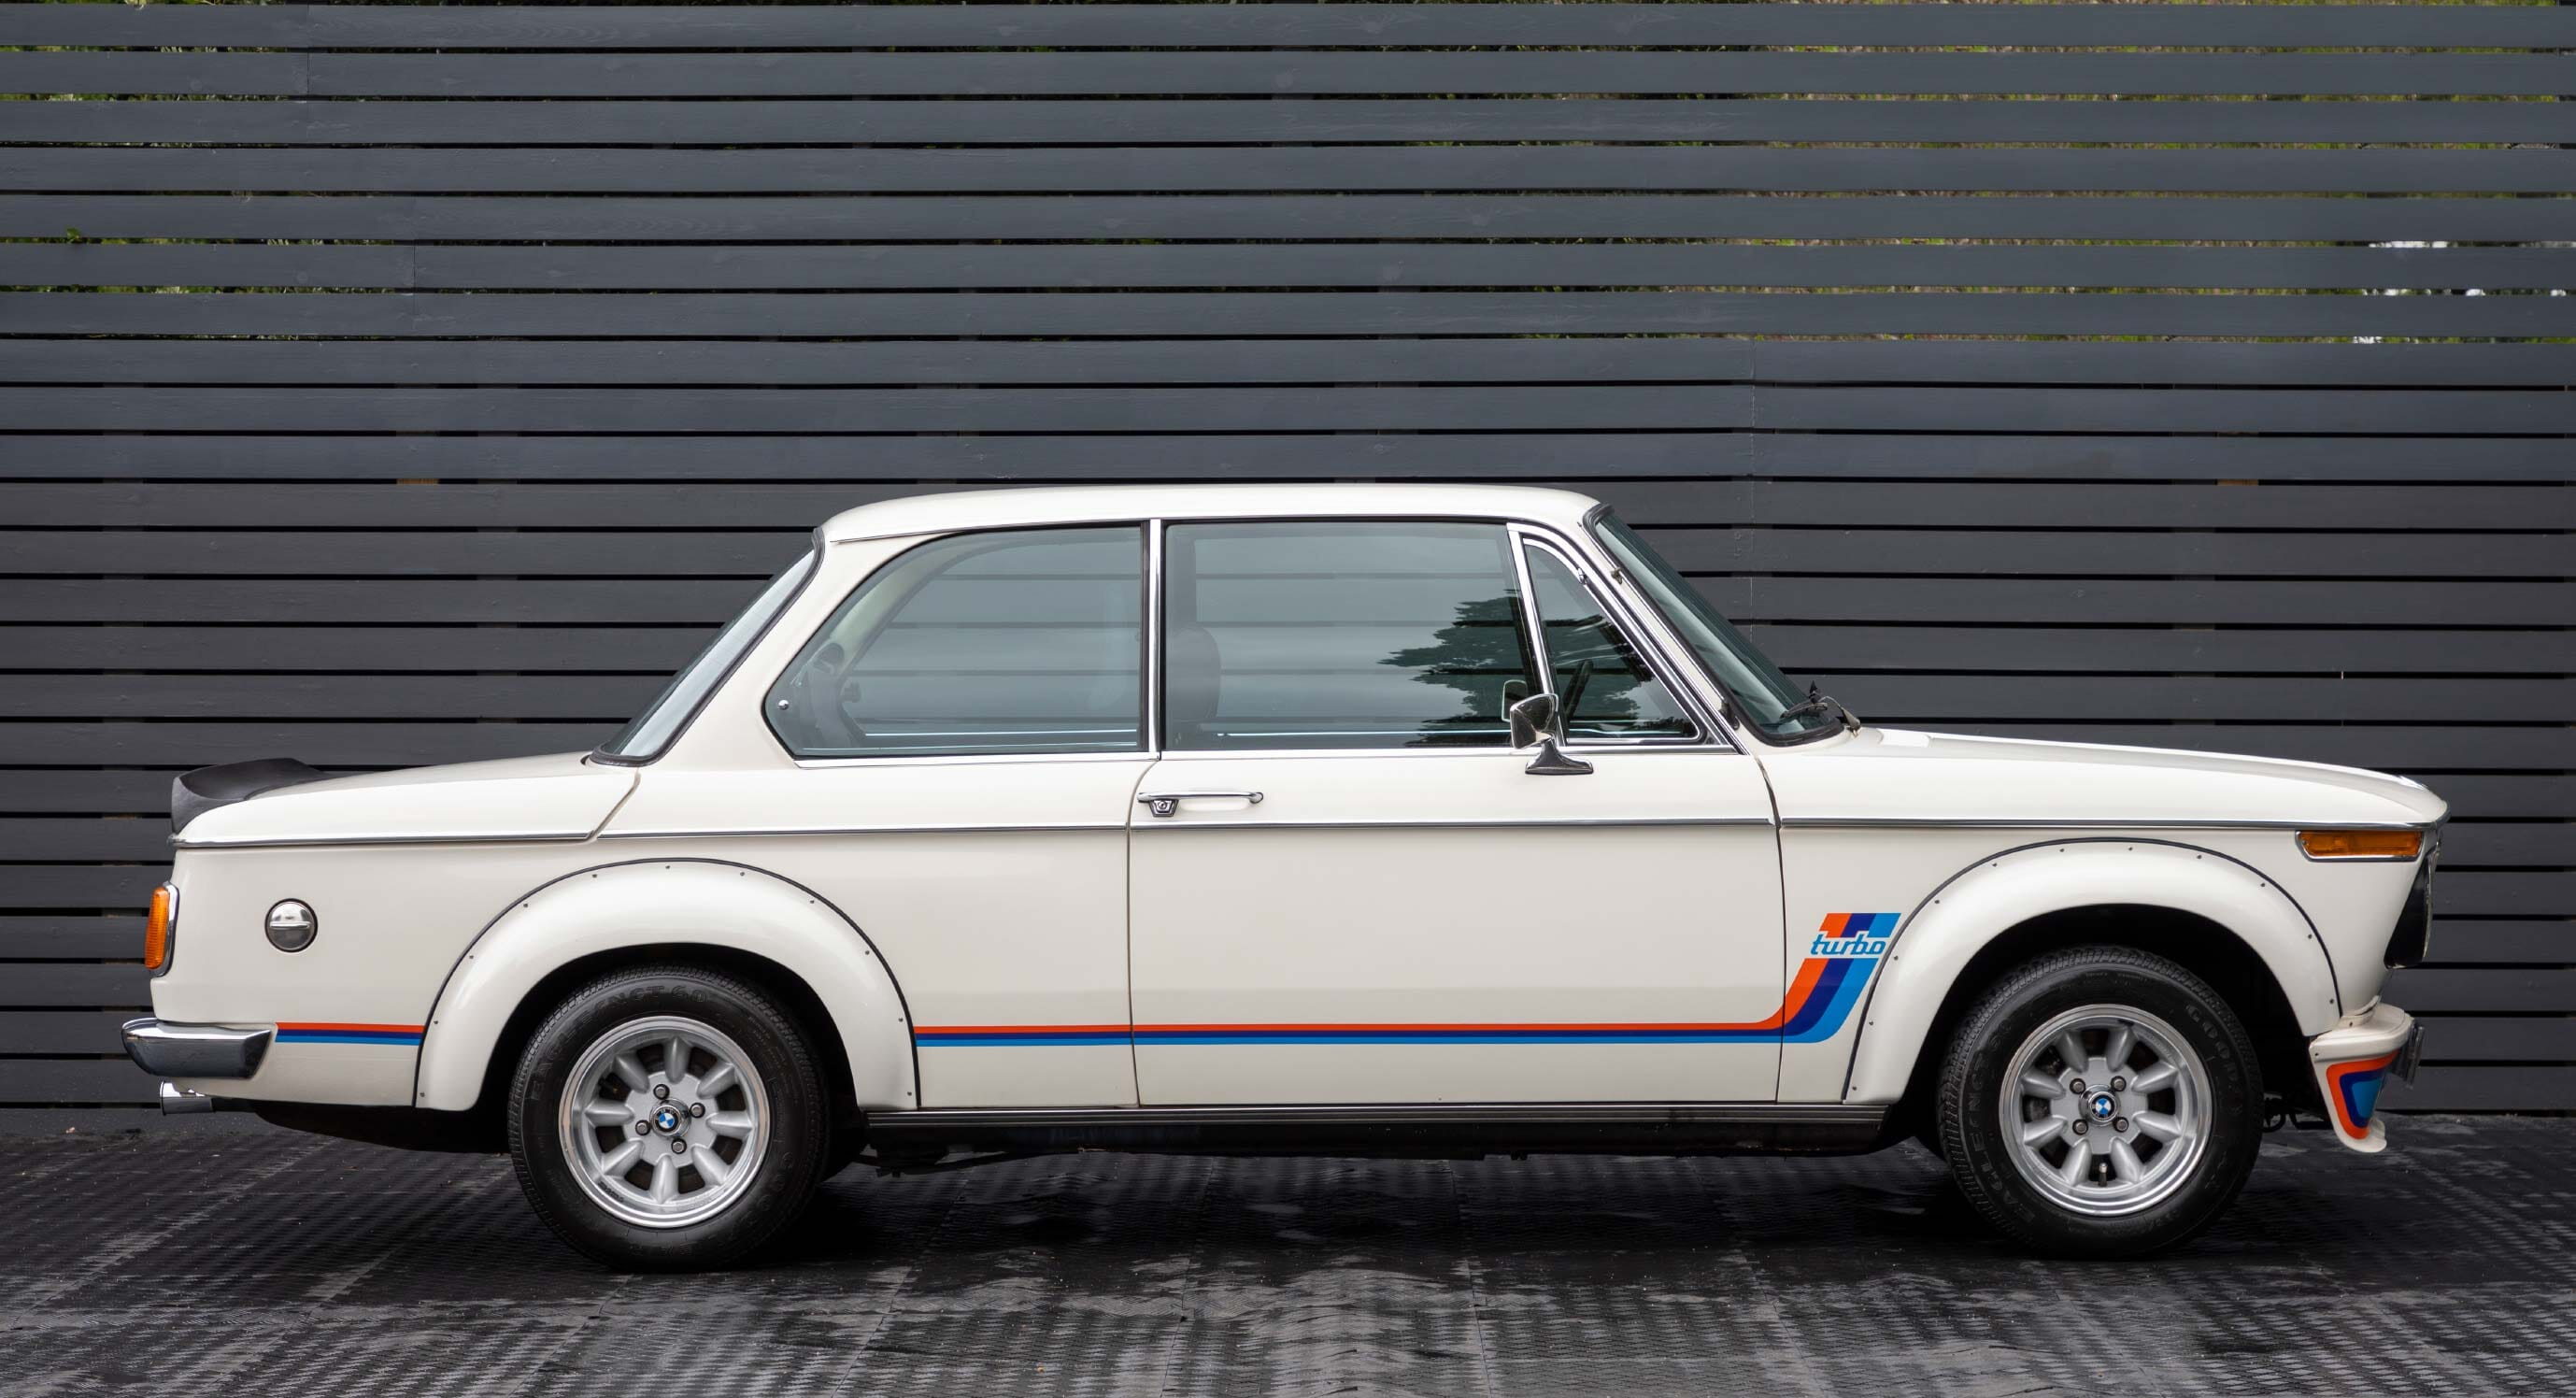 This BMW 2002 Turbo Is One Of The Last Remaining In The UK